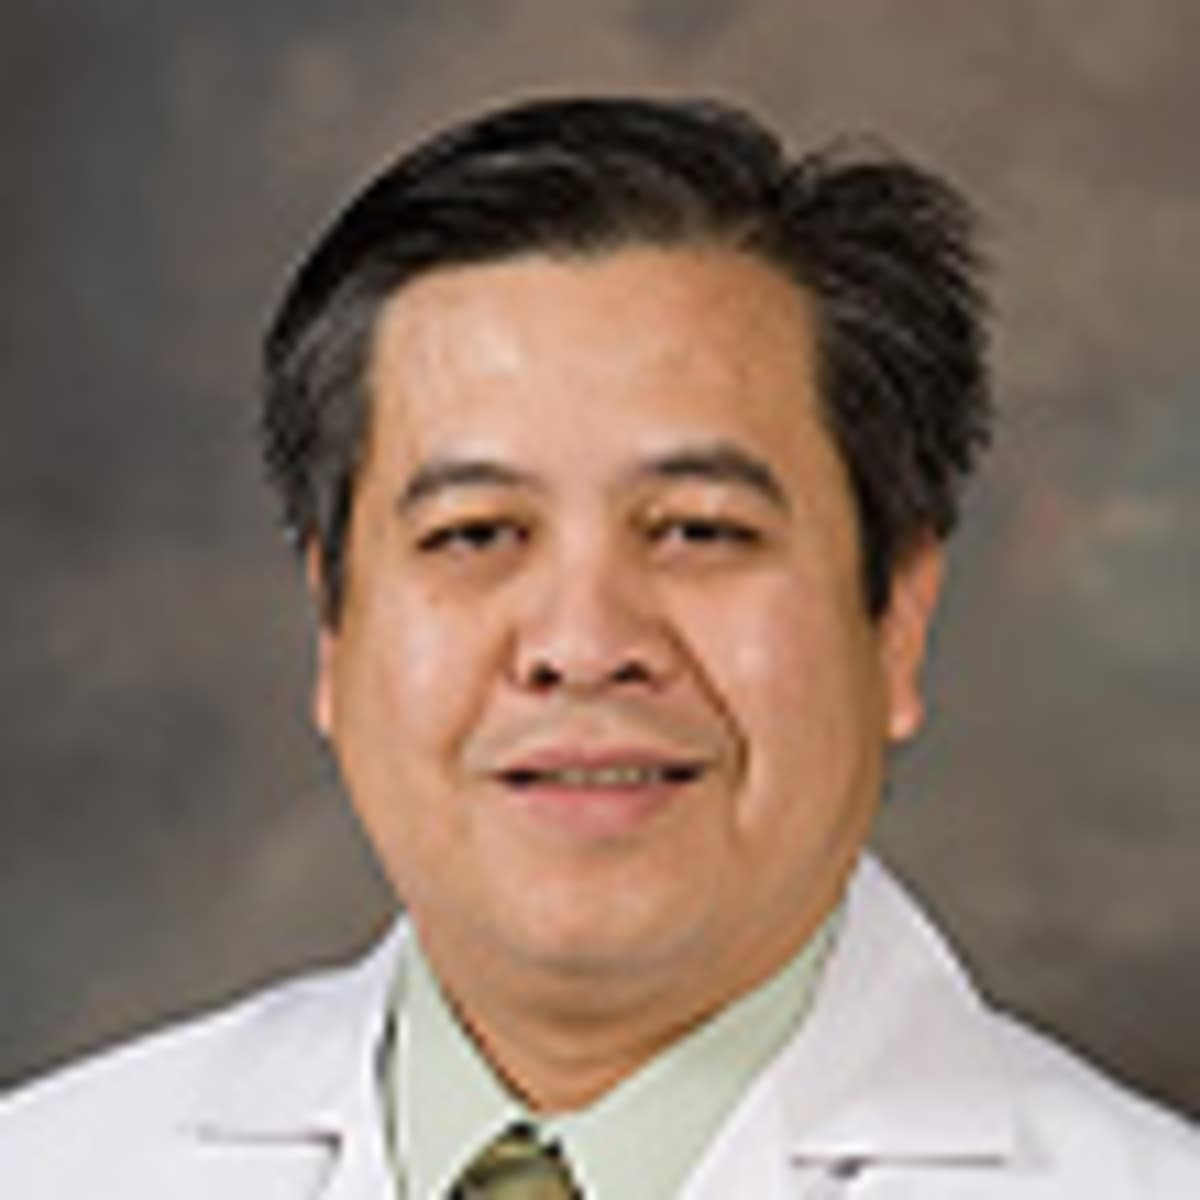 dr sun Dr christina sun has a 38/5 rating from patients visit ratemds for dr christina sun reviews, contact info, practice history, affiliated hospitals & more.